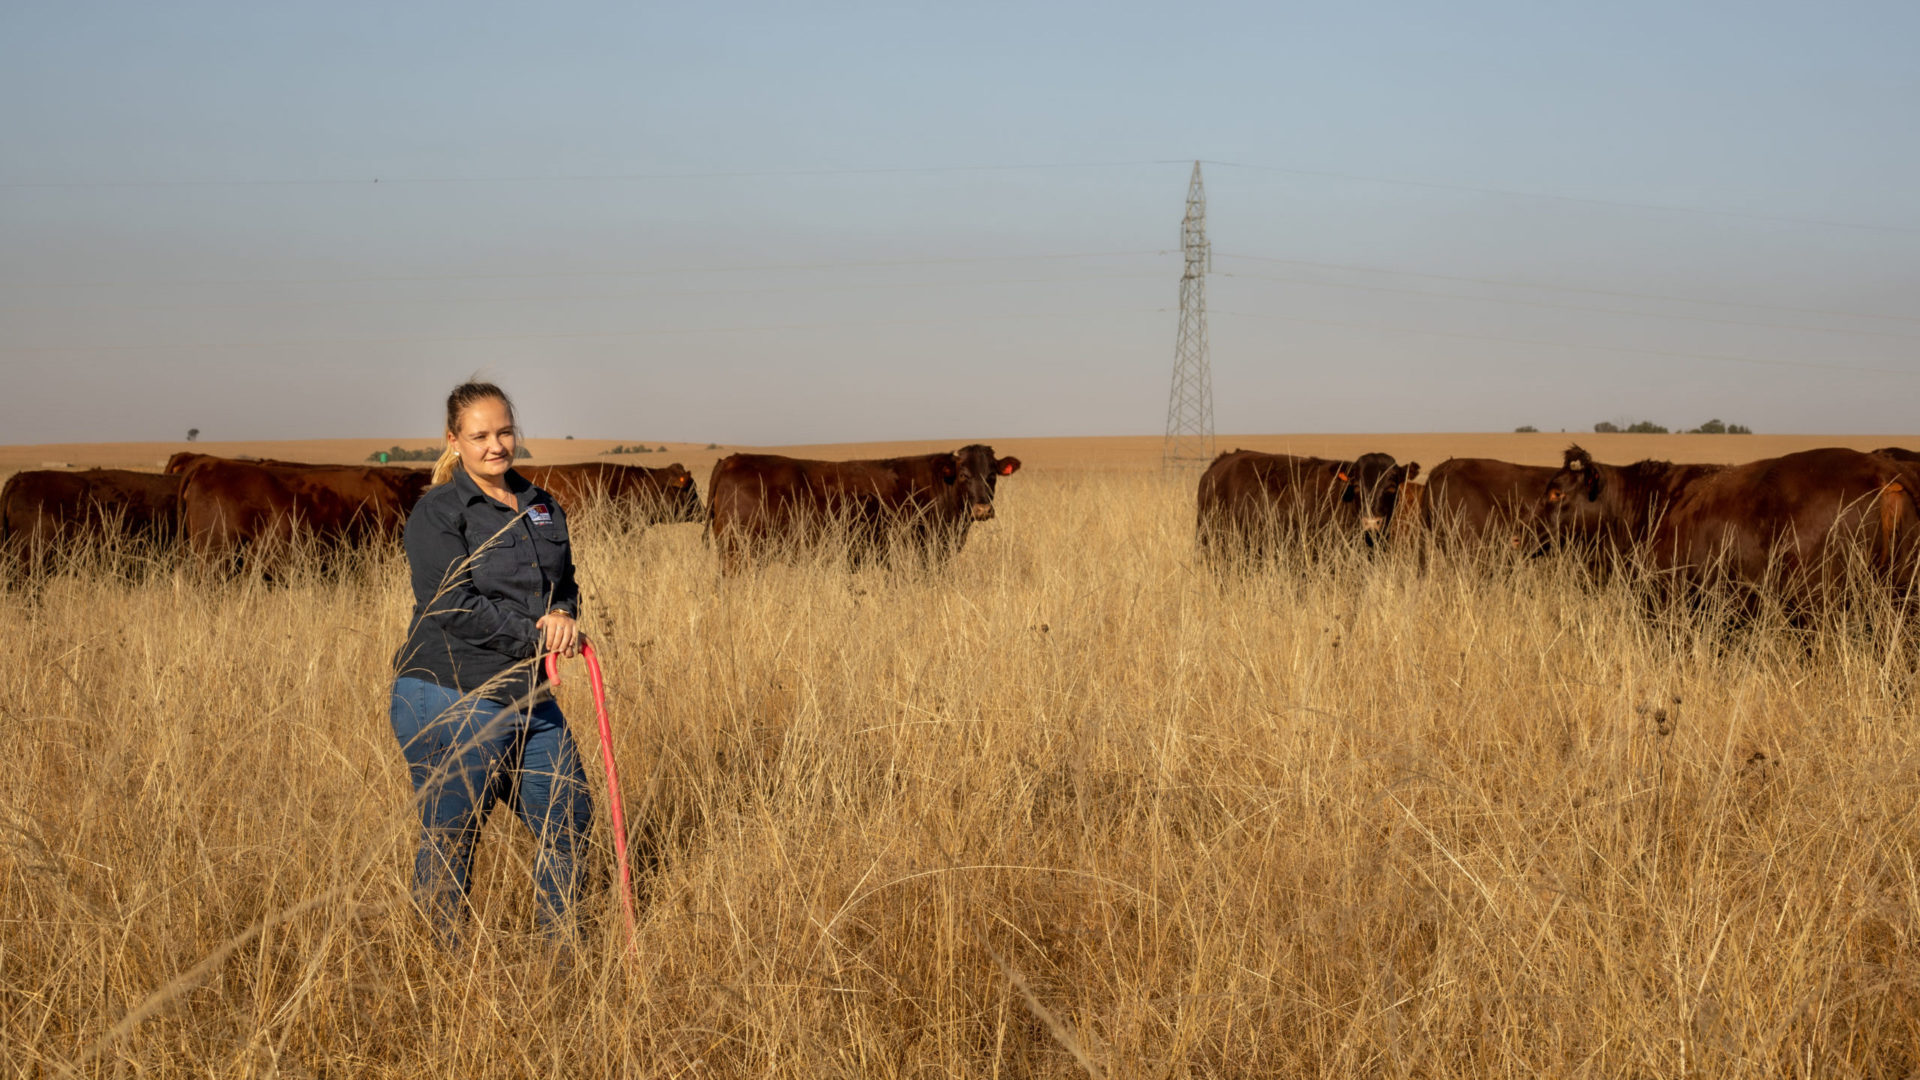 Annalea Van Niekerk (25) stands firm as the only female contender among this year's Free State Agriculture (FS Agri) Young Farmer of the Year. Photo: Supplied